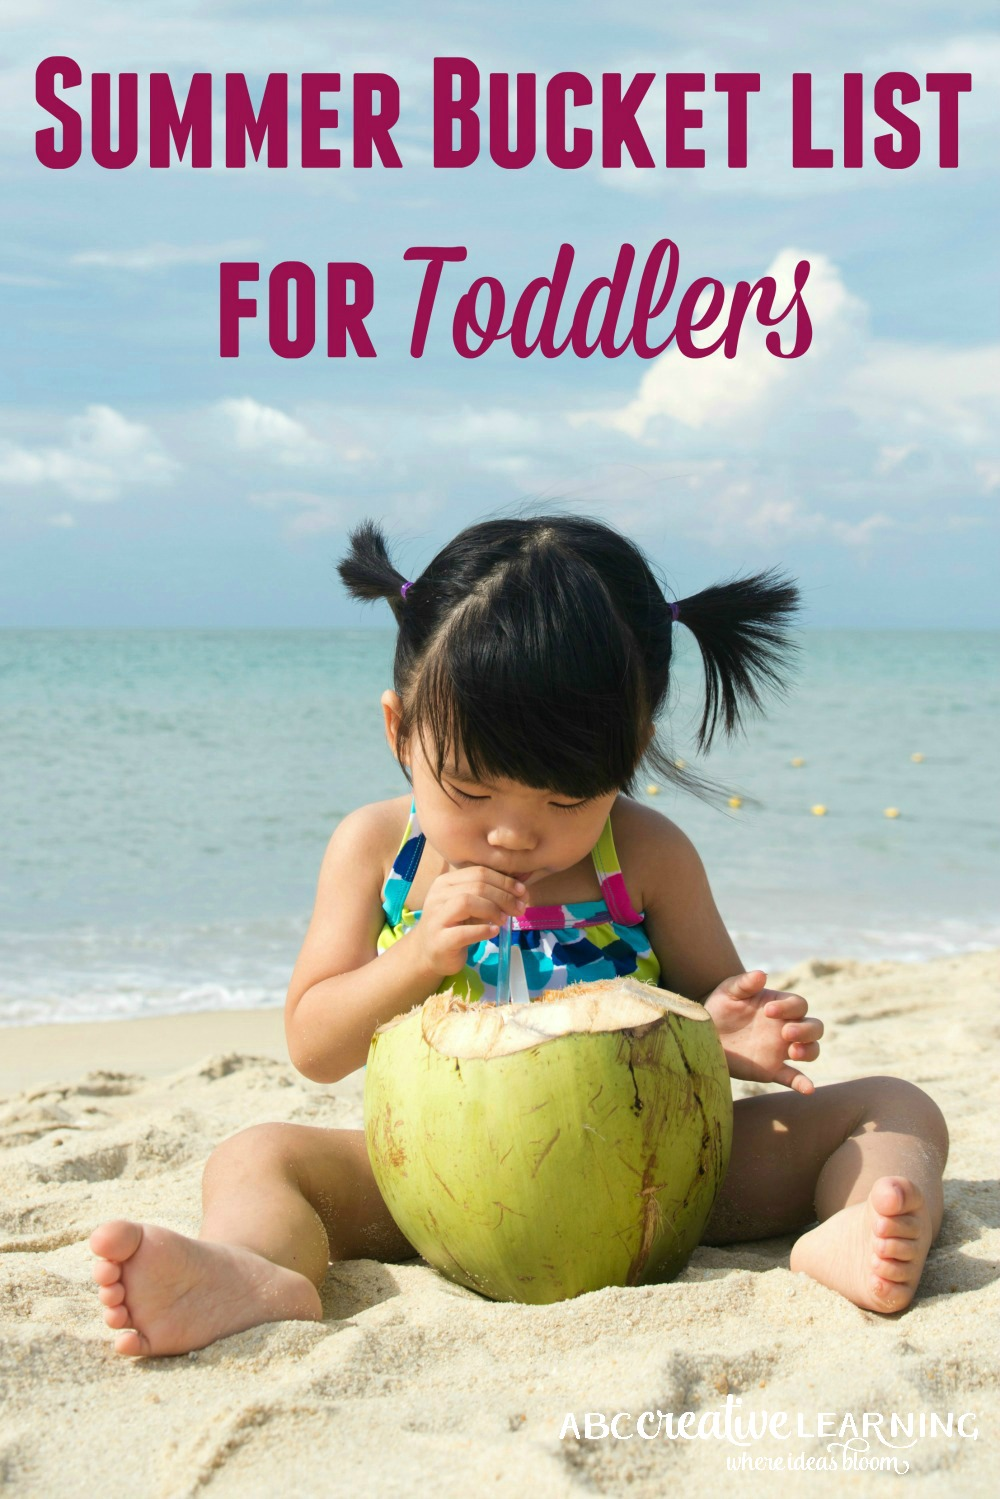 Summer Bucket List for Toddlers is the perfect list to keep your little ones busy all summer long! No more boring times or figuring out what to do next!